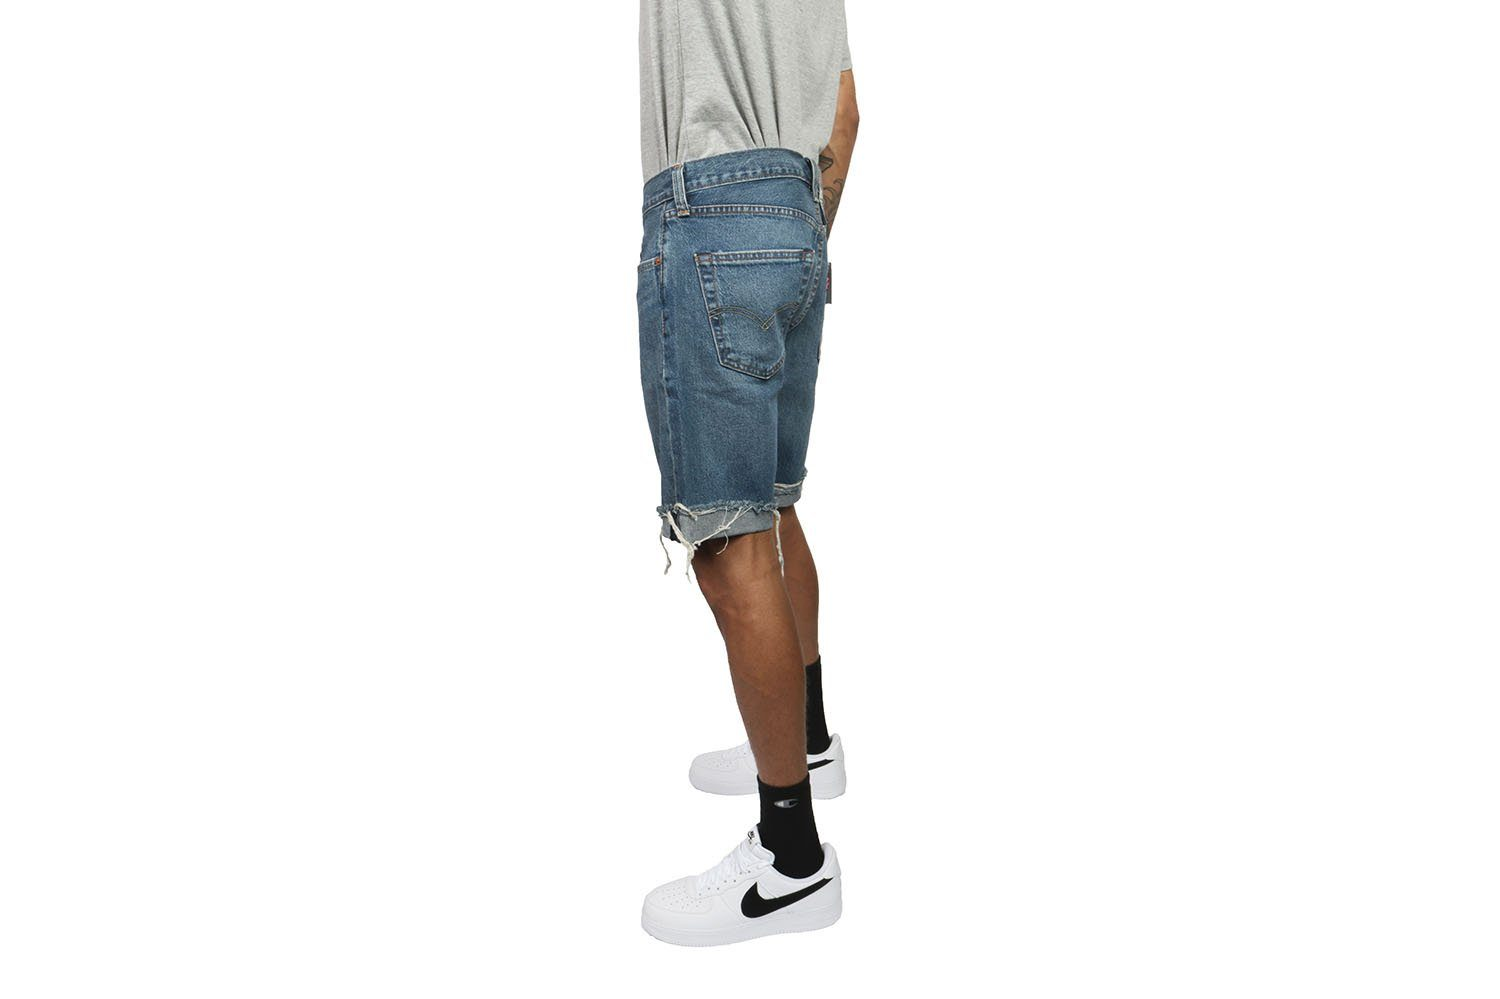 ORIGINAL CUTOFF SHORT - 501 MENS SOFTGOODS LEVIS